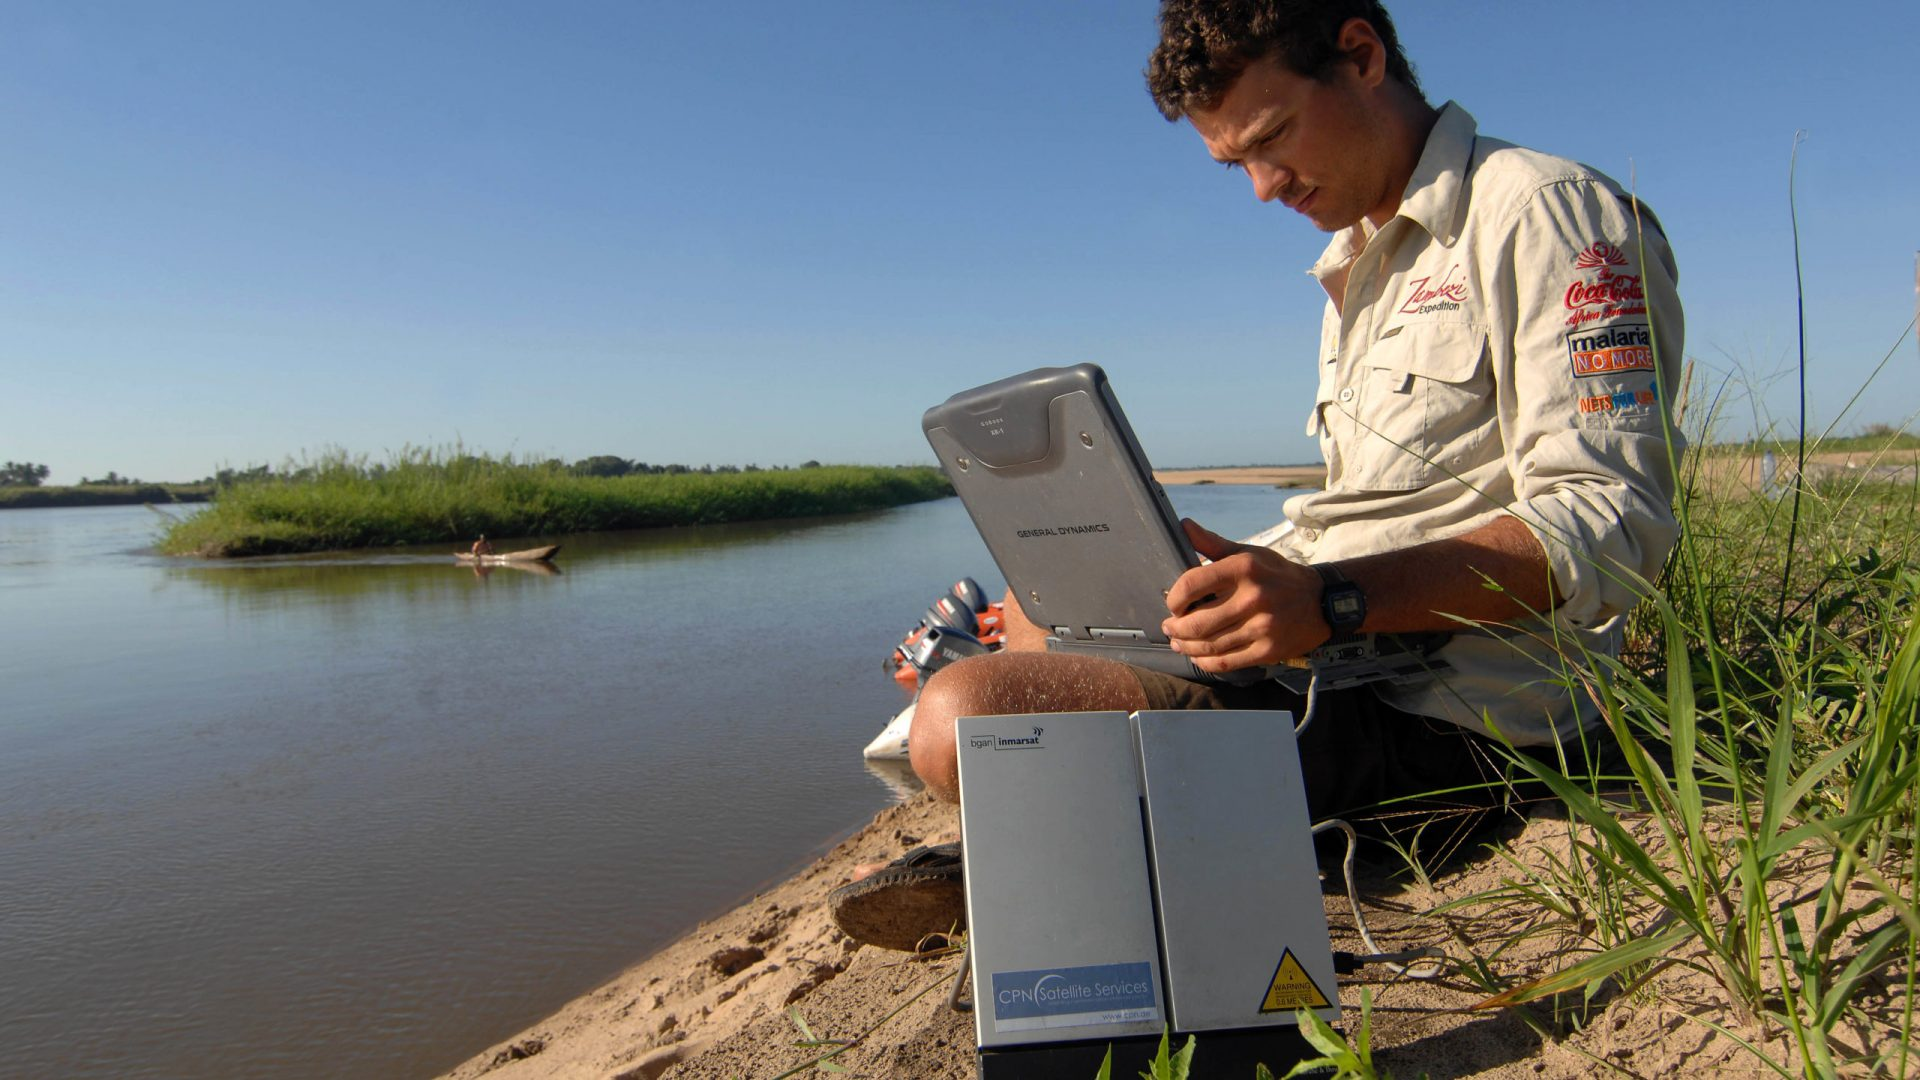 A member of the Roll Back Malaria Zambezi Expedition crew, sitting on a sandbank next to the expedition boats, uses a ruggedized notebook and a BGAN satellite terminal to check GPS points vital for navigation in the river's delta in Mozambique.